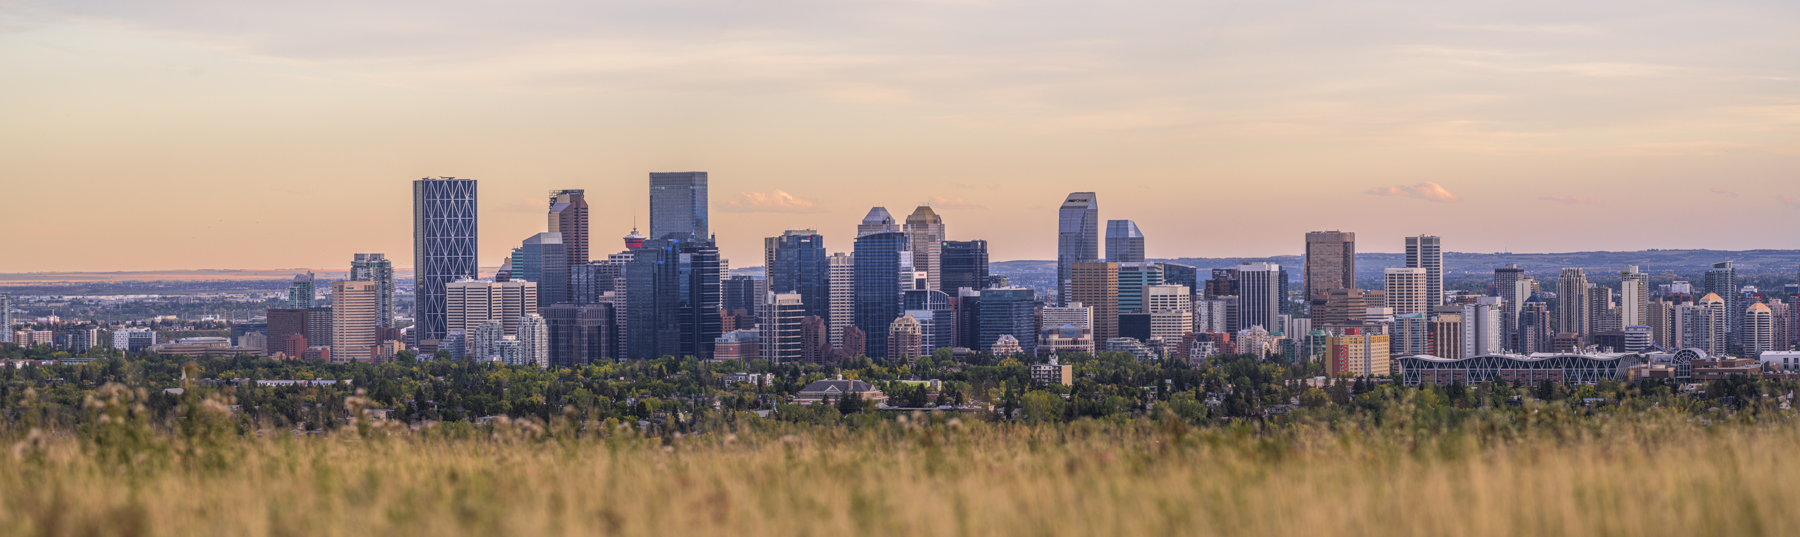 calgary panoramic photo from Nose Hill Park